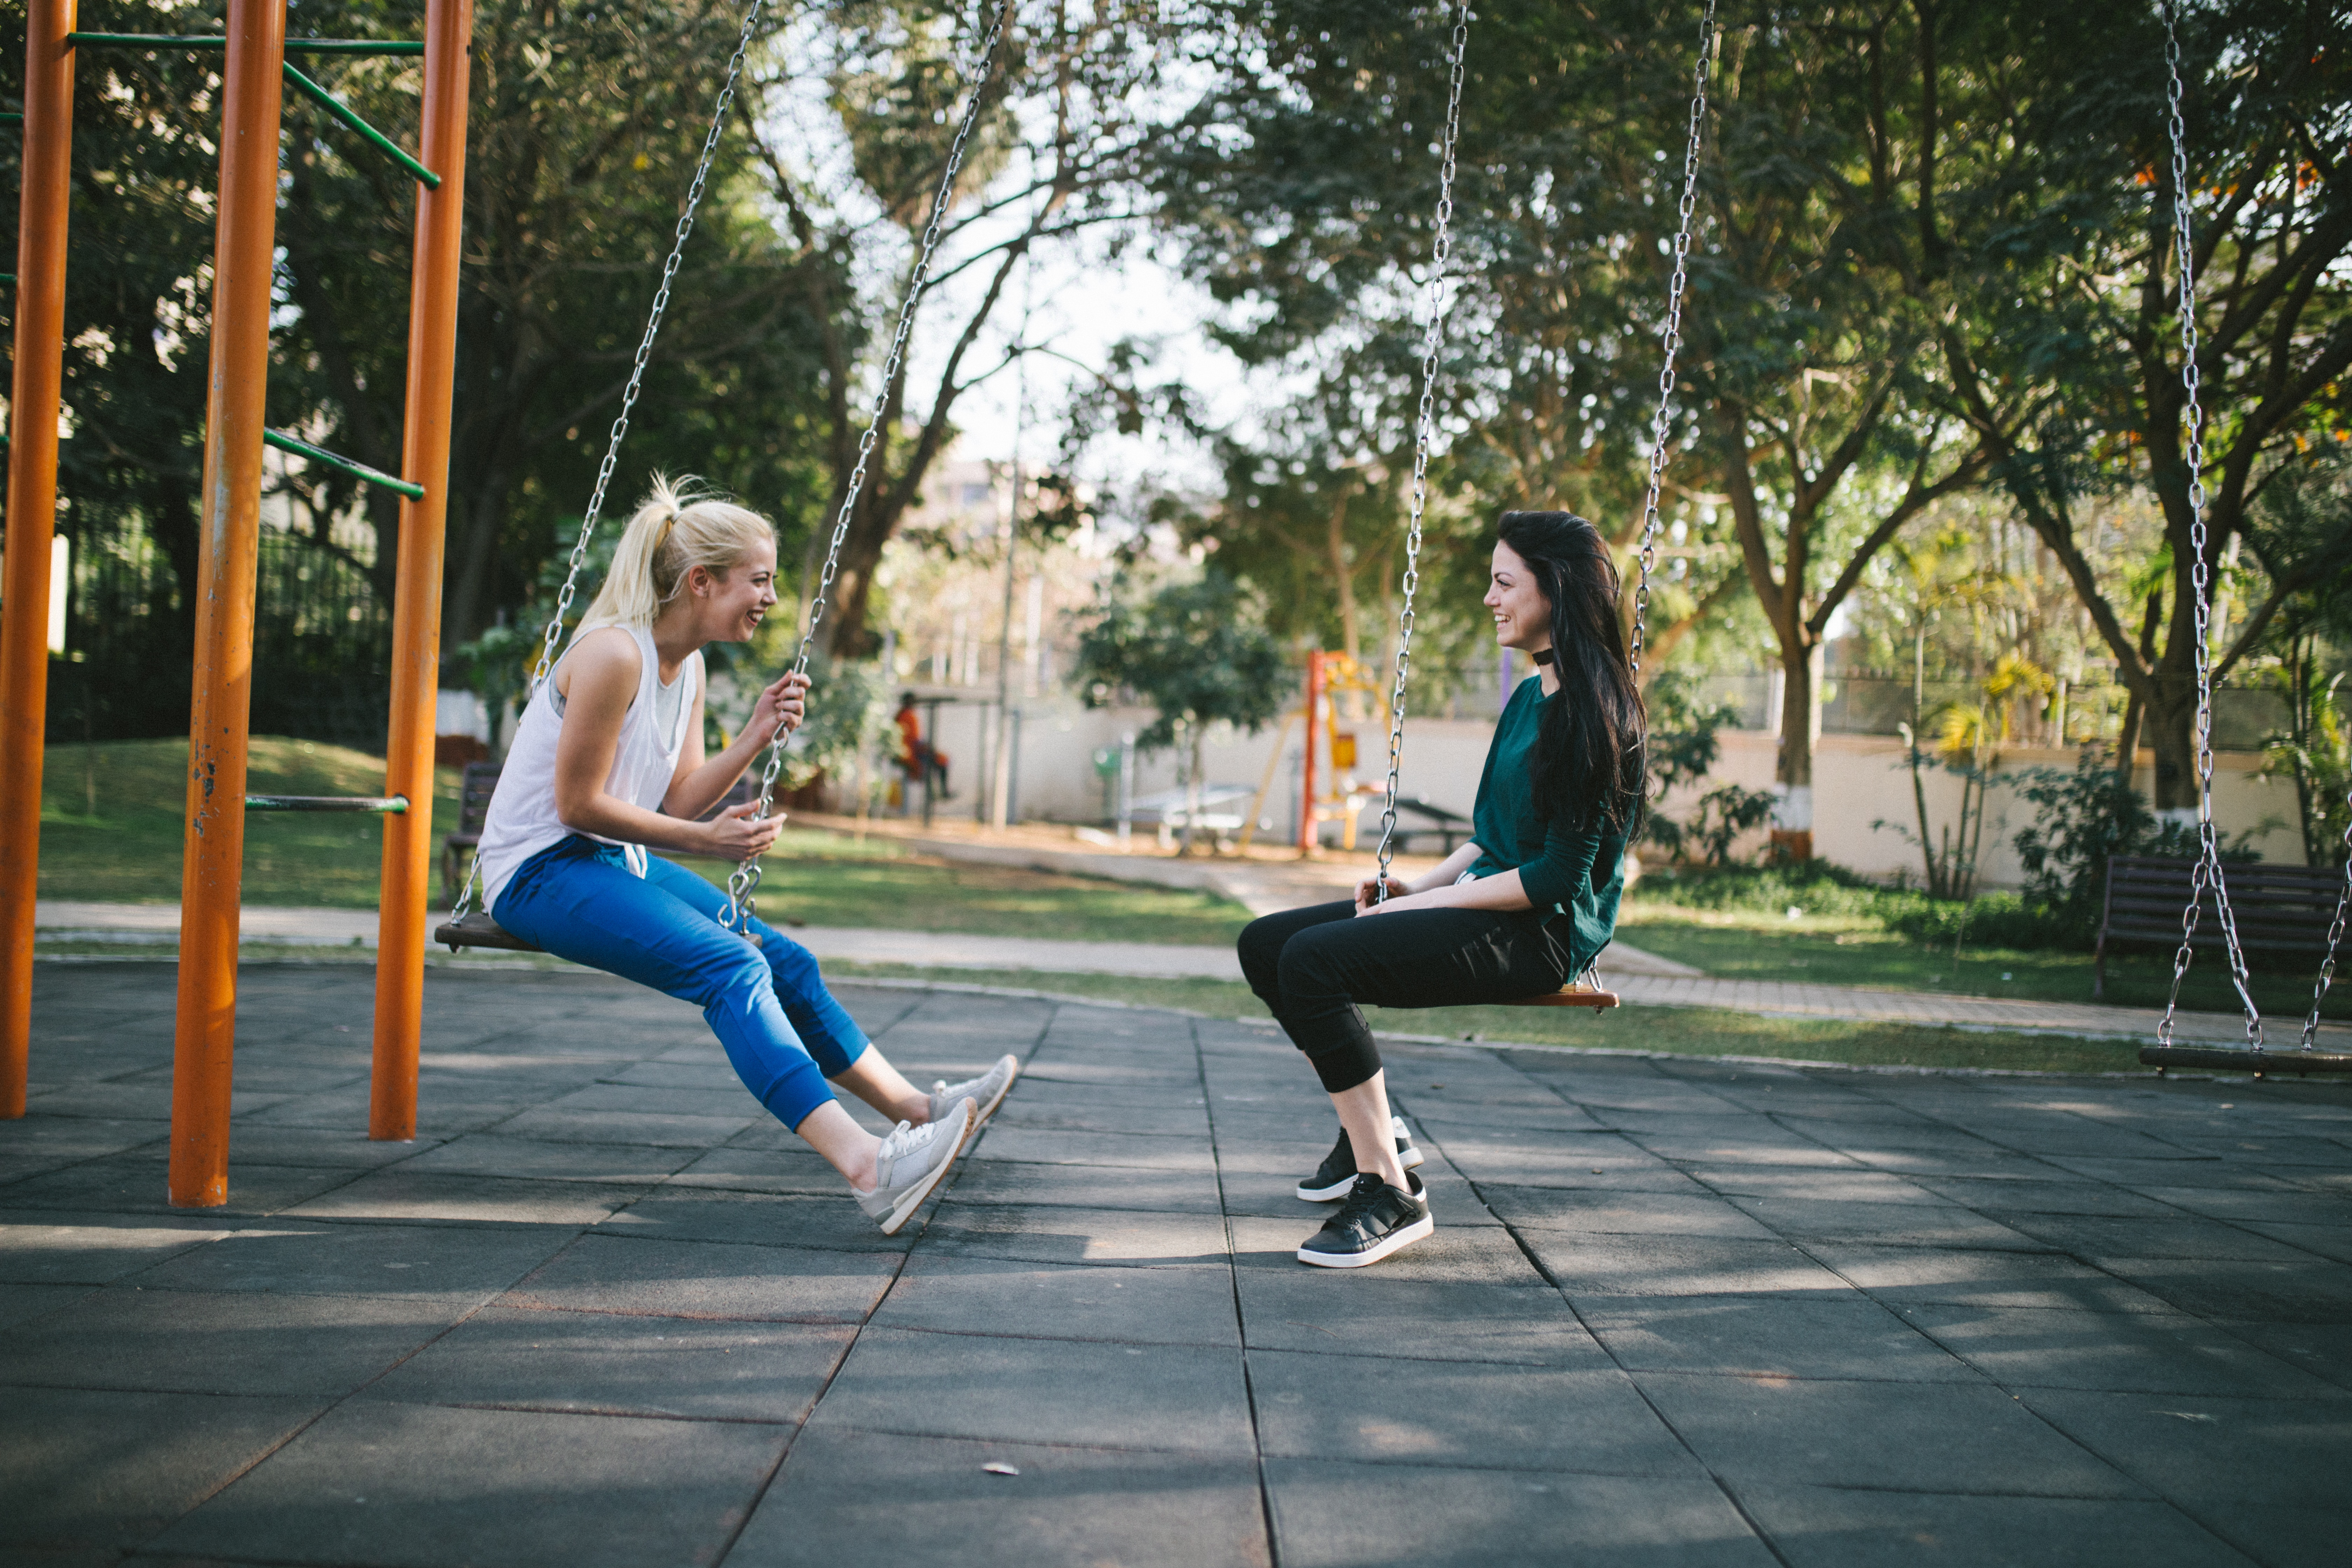 Two friends sitting on swings at a park, laughing and facing each other.